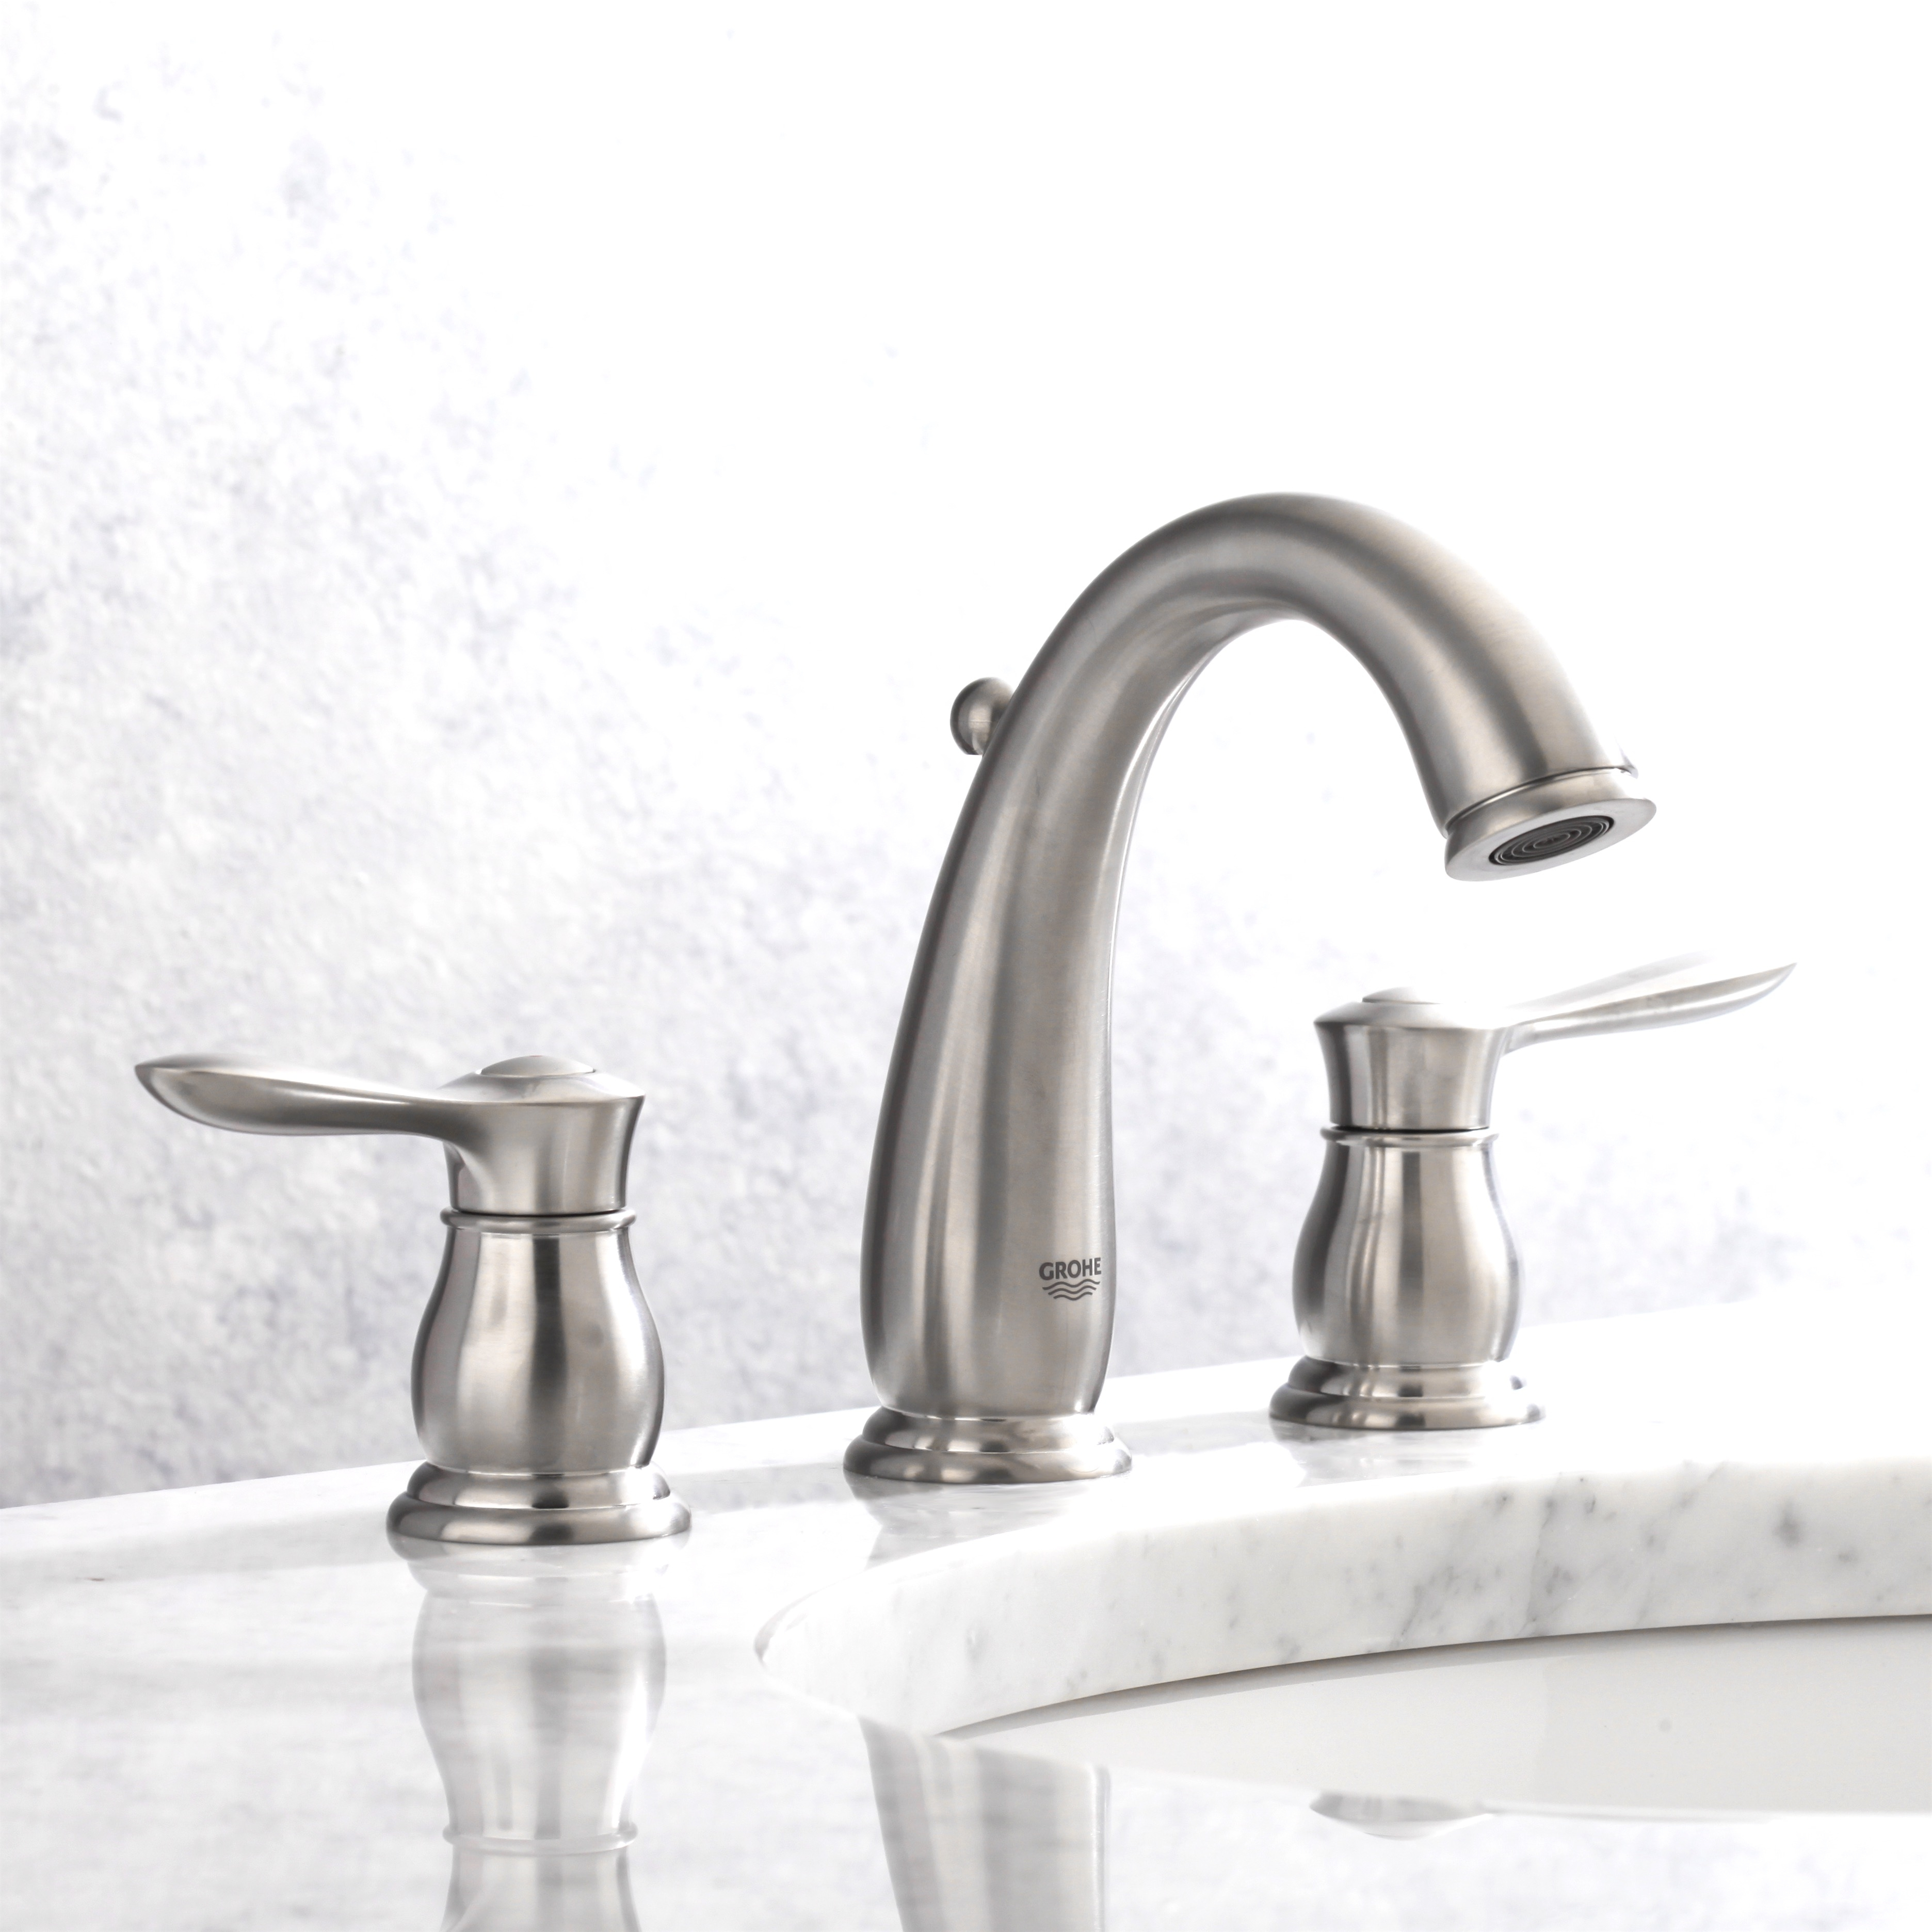 Ideas, grohe bathroom faucets brushed nickel grohe bathroom faucets brushed nickel grohe bathroom faucets brushed nickel great grohe 4484 home 3744 x 3744  .